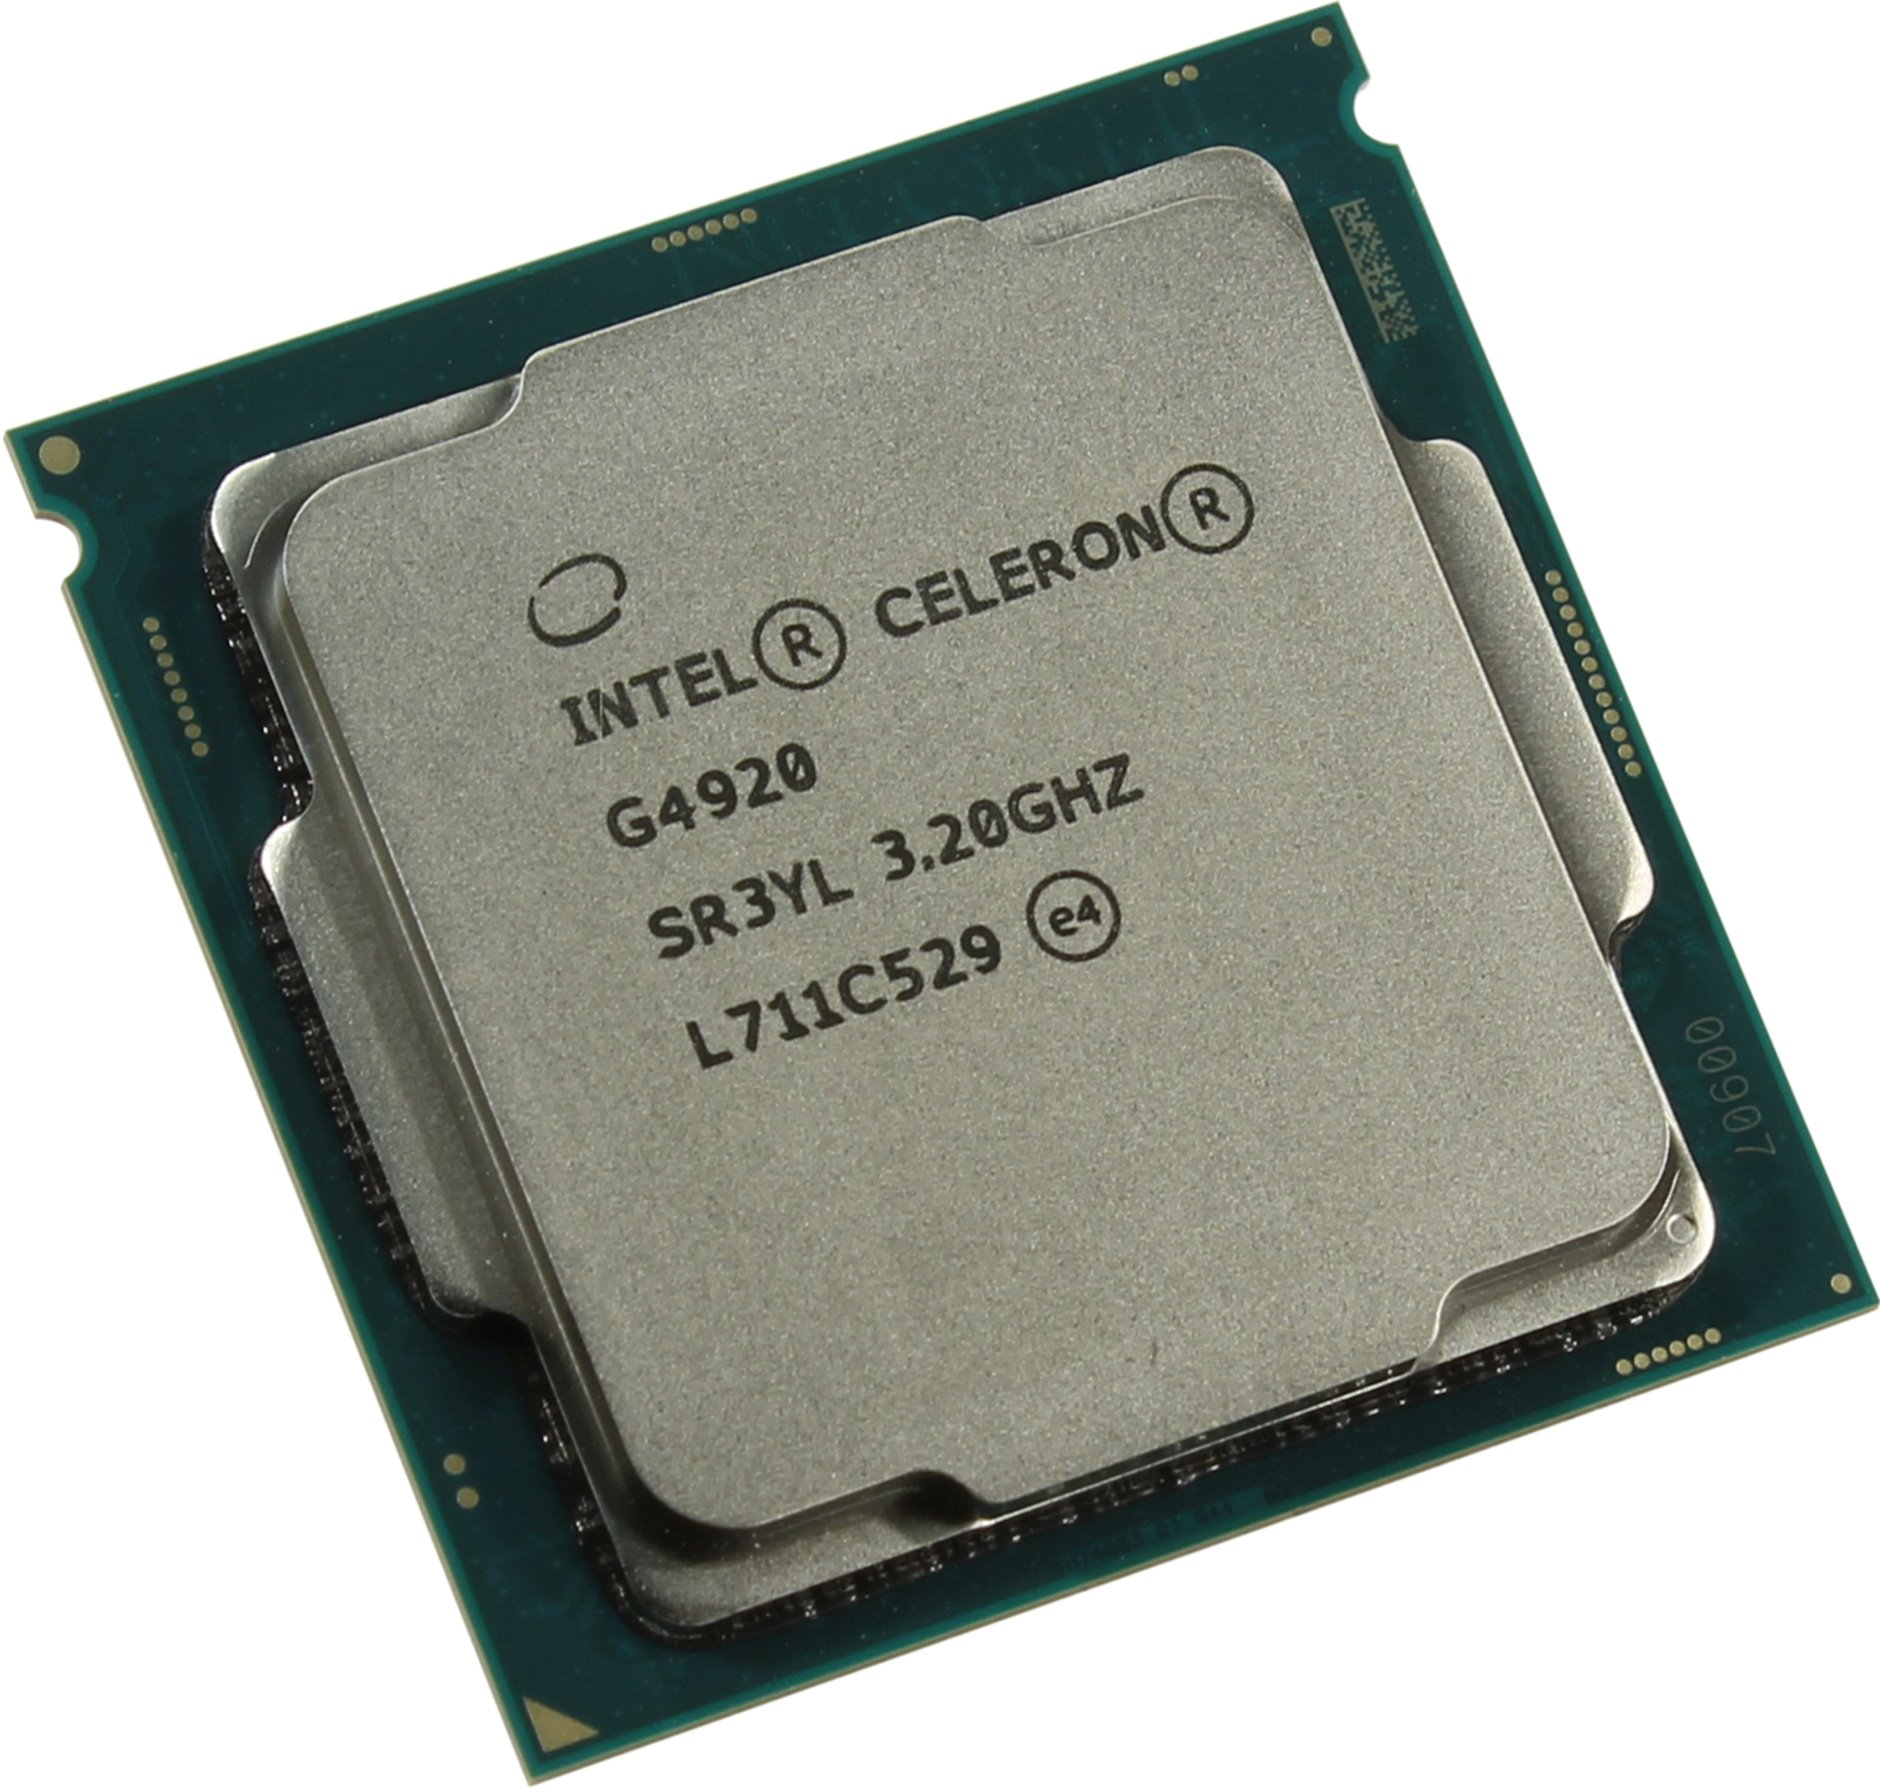 Процессор Intel Original Celeron G4920 Soc-1151v2 (CM8068403378011S R3YL) (3.2GHz/Intel UHD Graphics 610) OEM